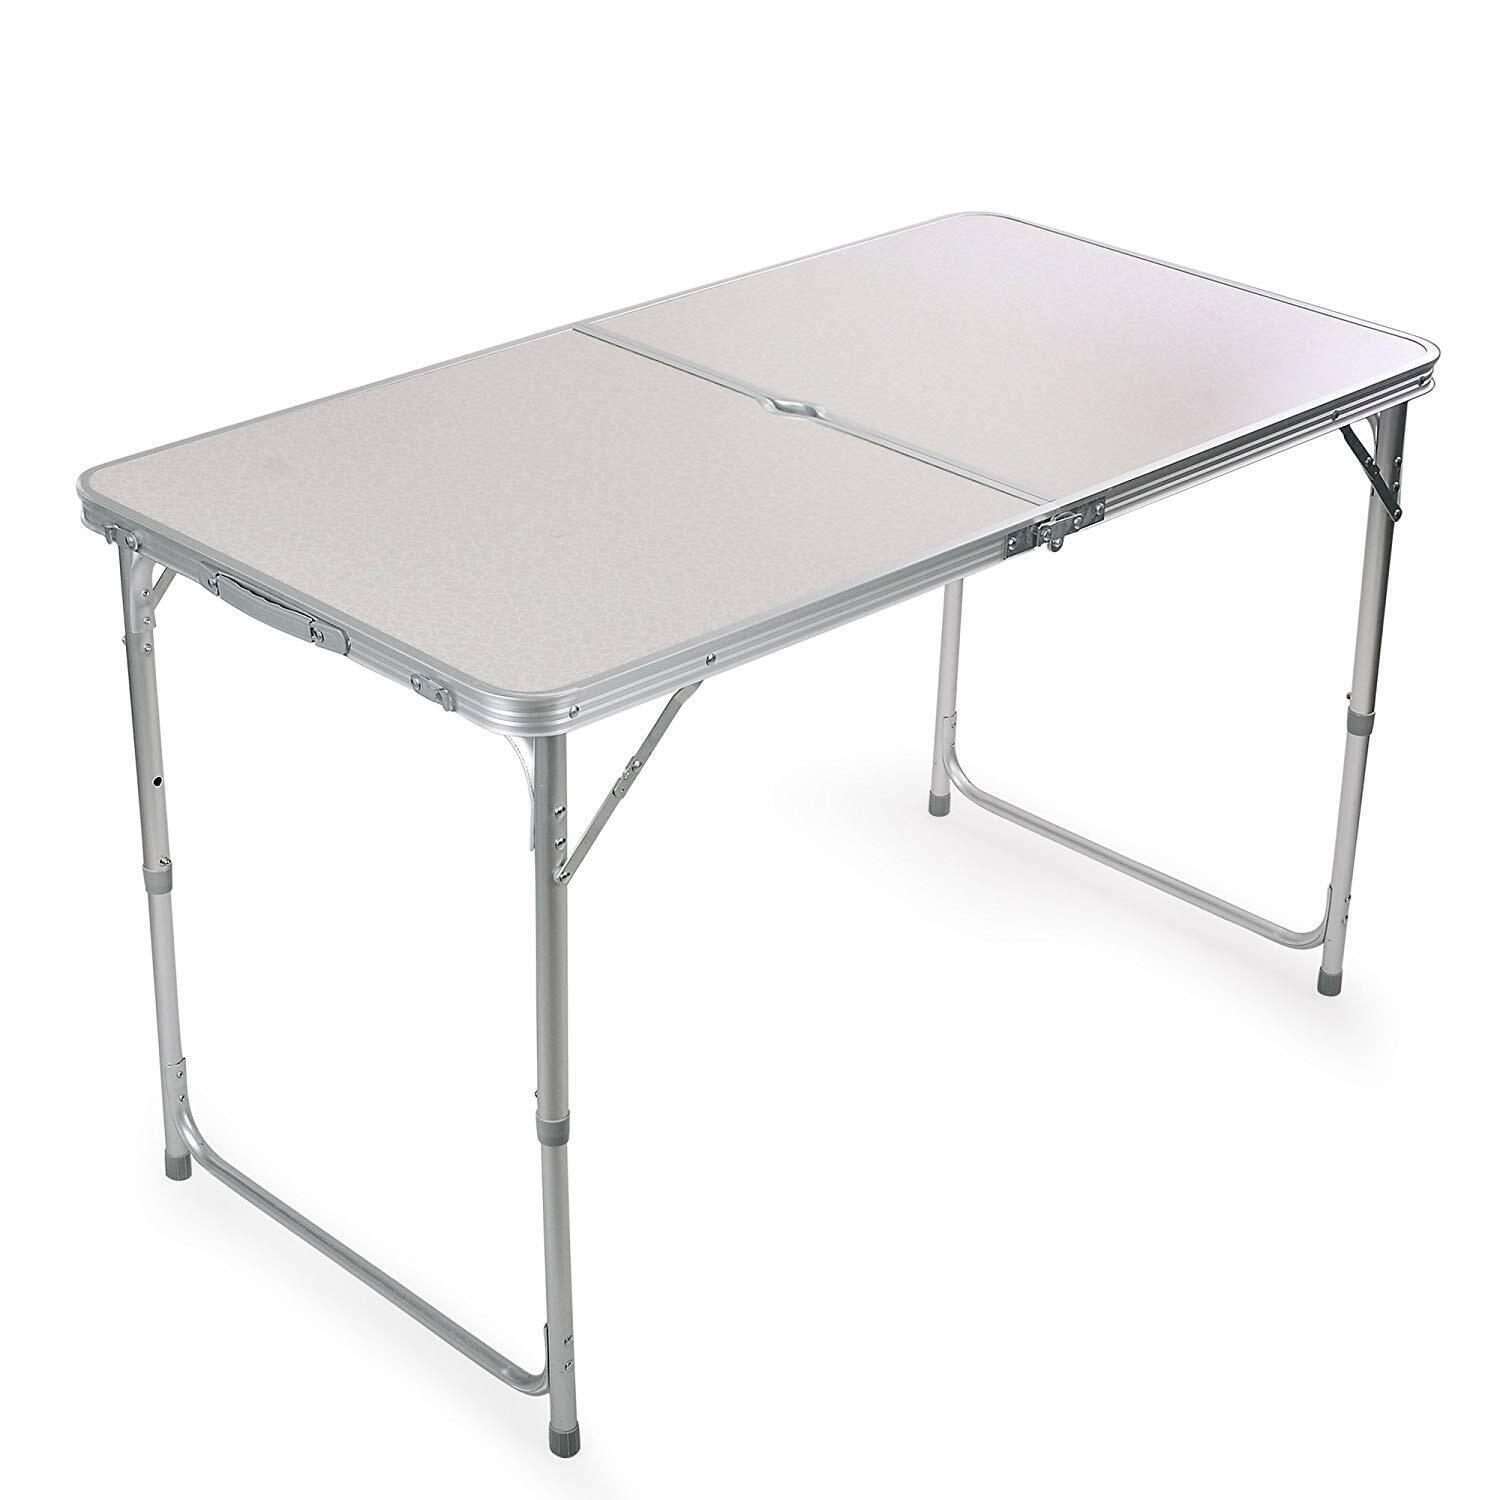 Folding Metal Table Portable Adjustable Height Camping Outdoor BBQ Yard Cooking